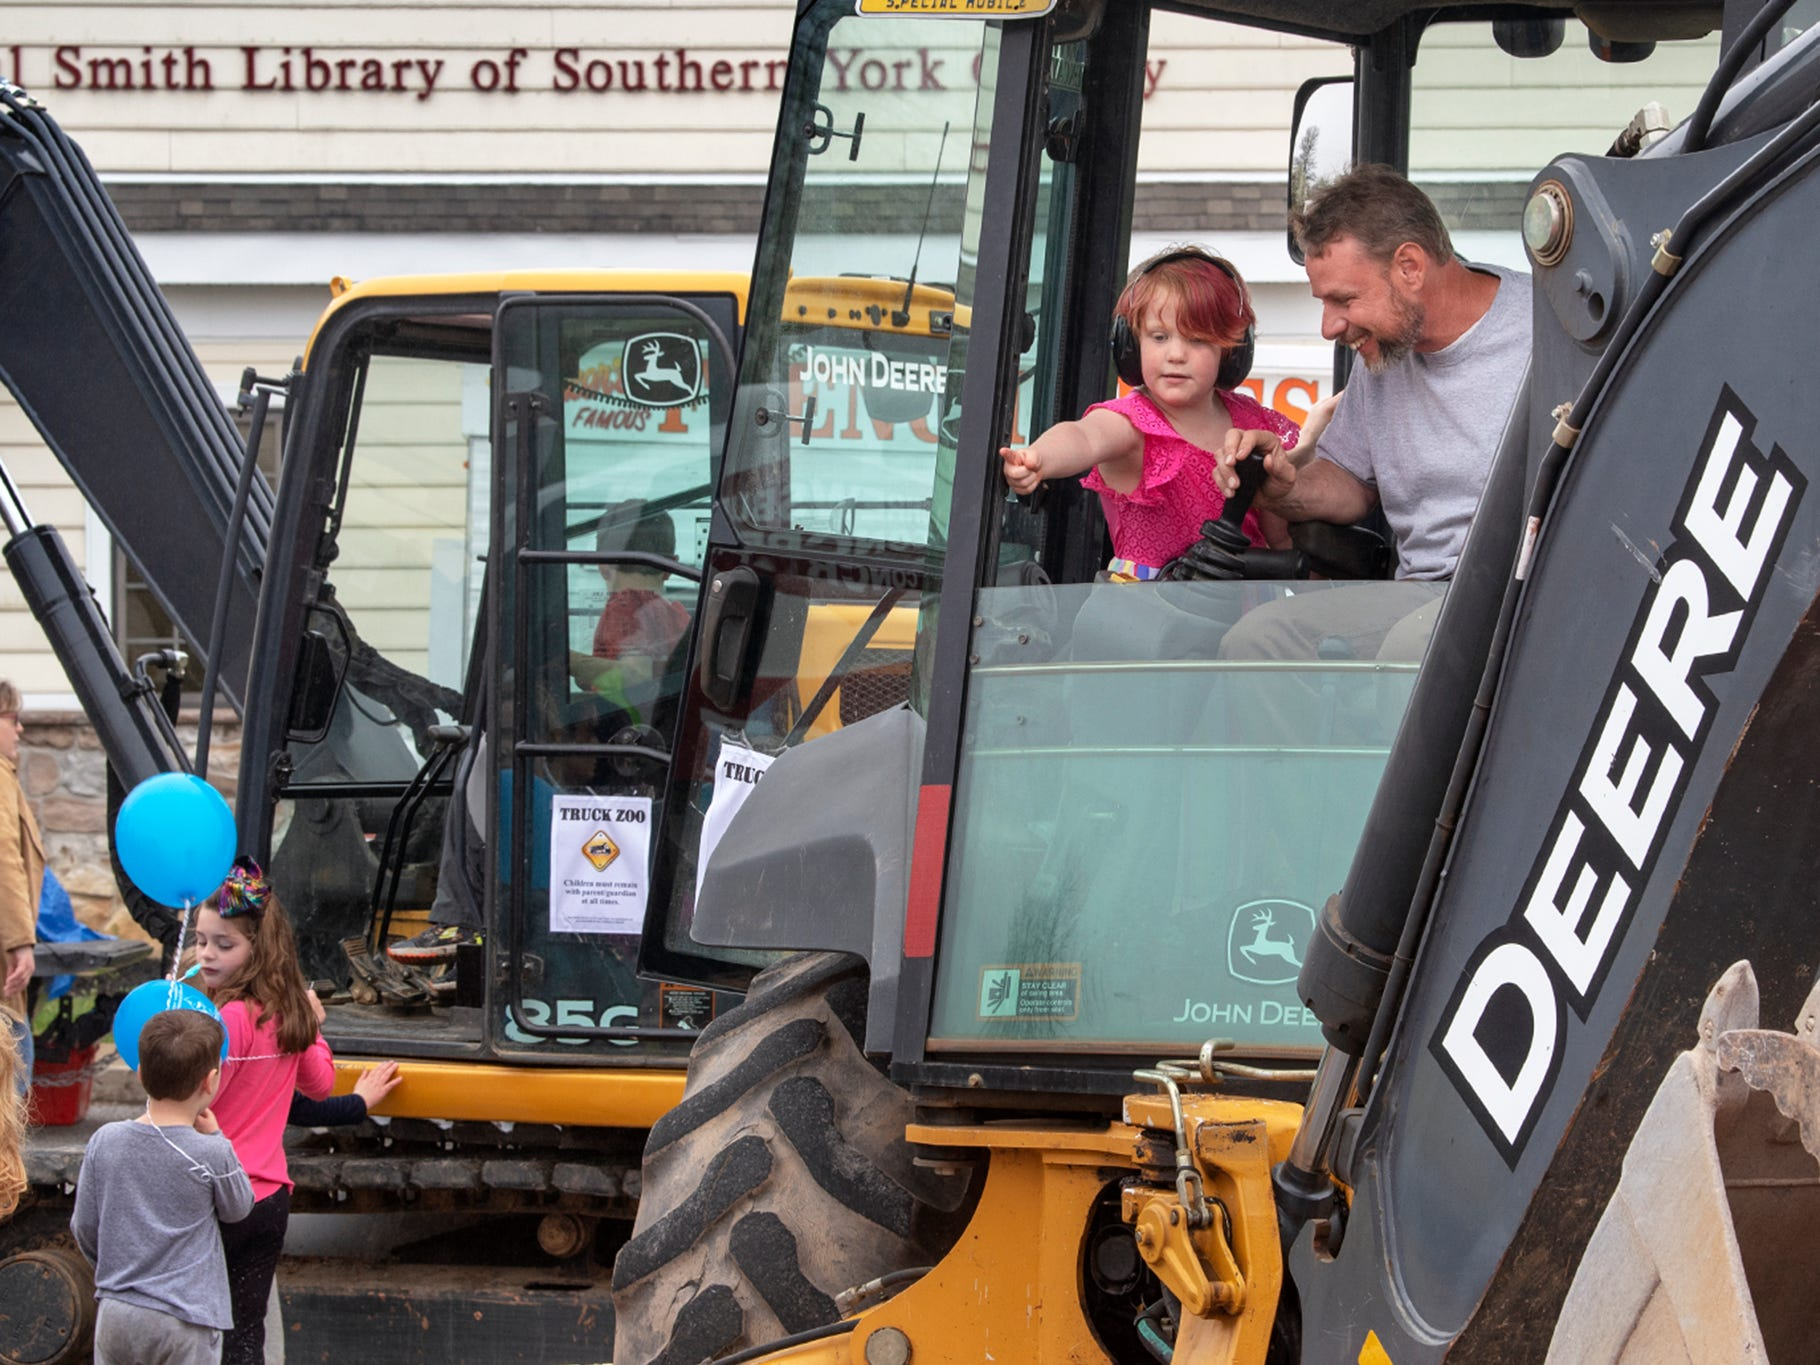 Dan Fiedler, right, of Clear View Excavating, Inc. lets Elliott Cunningham, age 4, of Felton direct the bucket of a backhoe during the Truck Zoo at Paul Smith Library of Southern York County. Equipment from six companies, two fire companies and Shrewsbury borough made their equipment available for children and parents to explore during the library's Big Book Sale fundraiser event Sunday April 14.